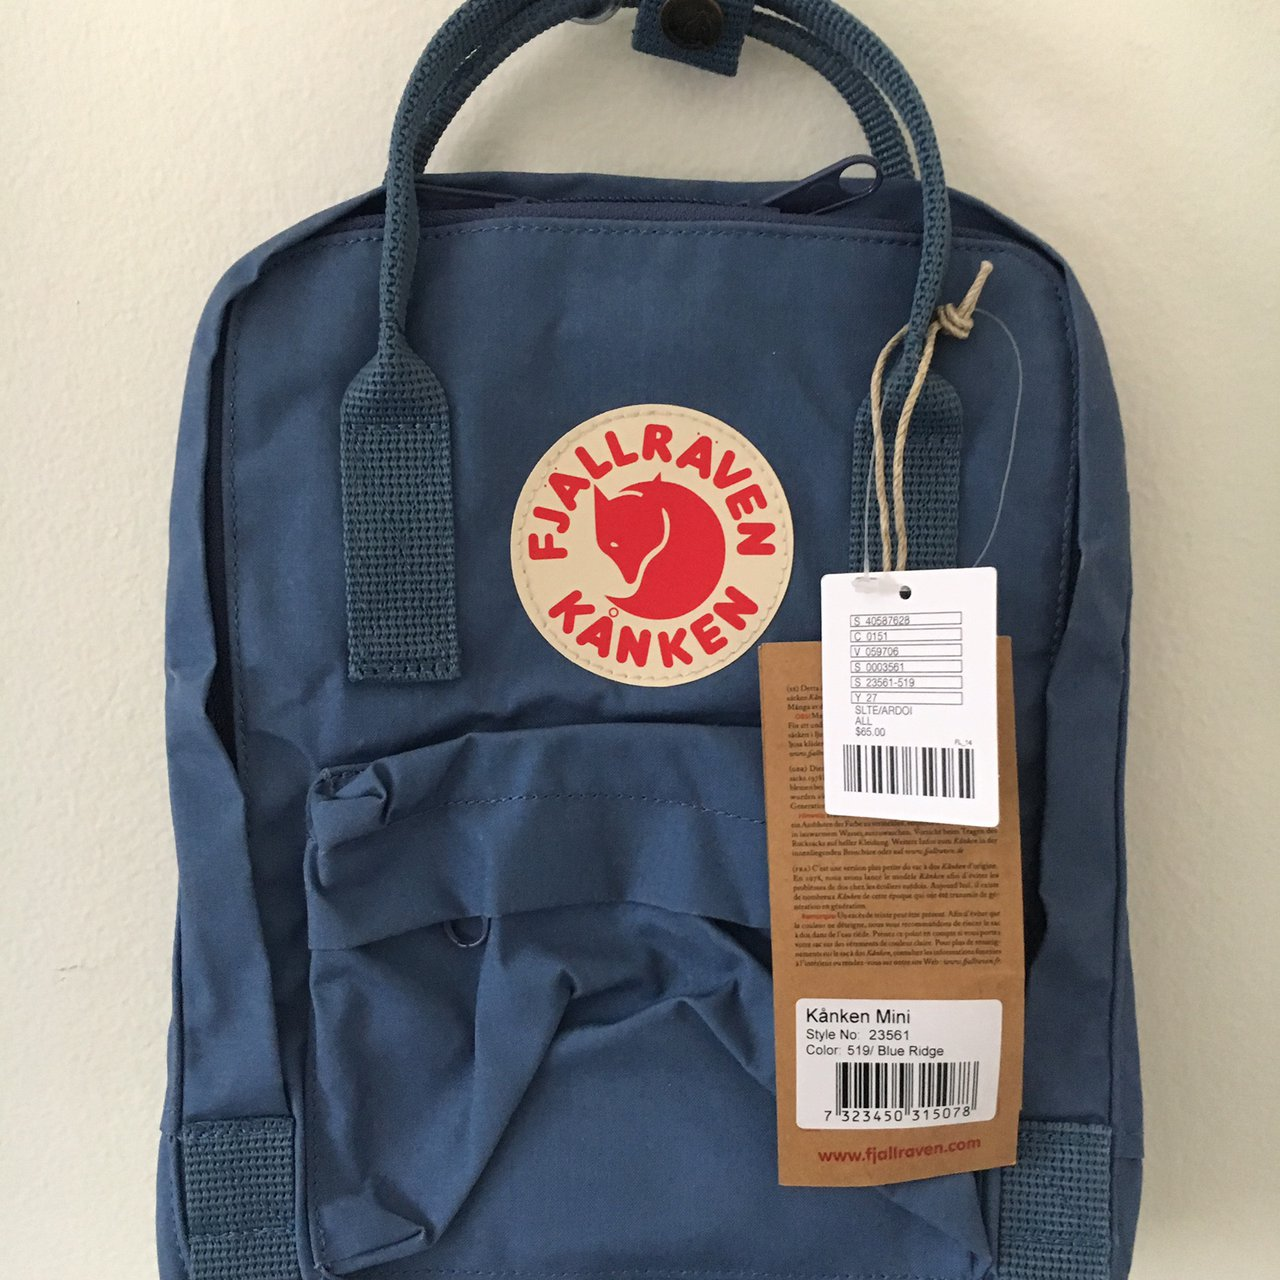 23f6f51272ffe New with tags Fjallraven Kanken Mini Backpack in blue. from - Depop